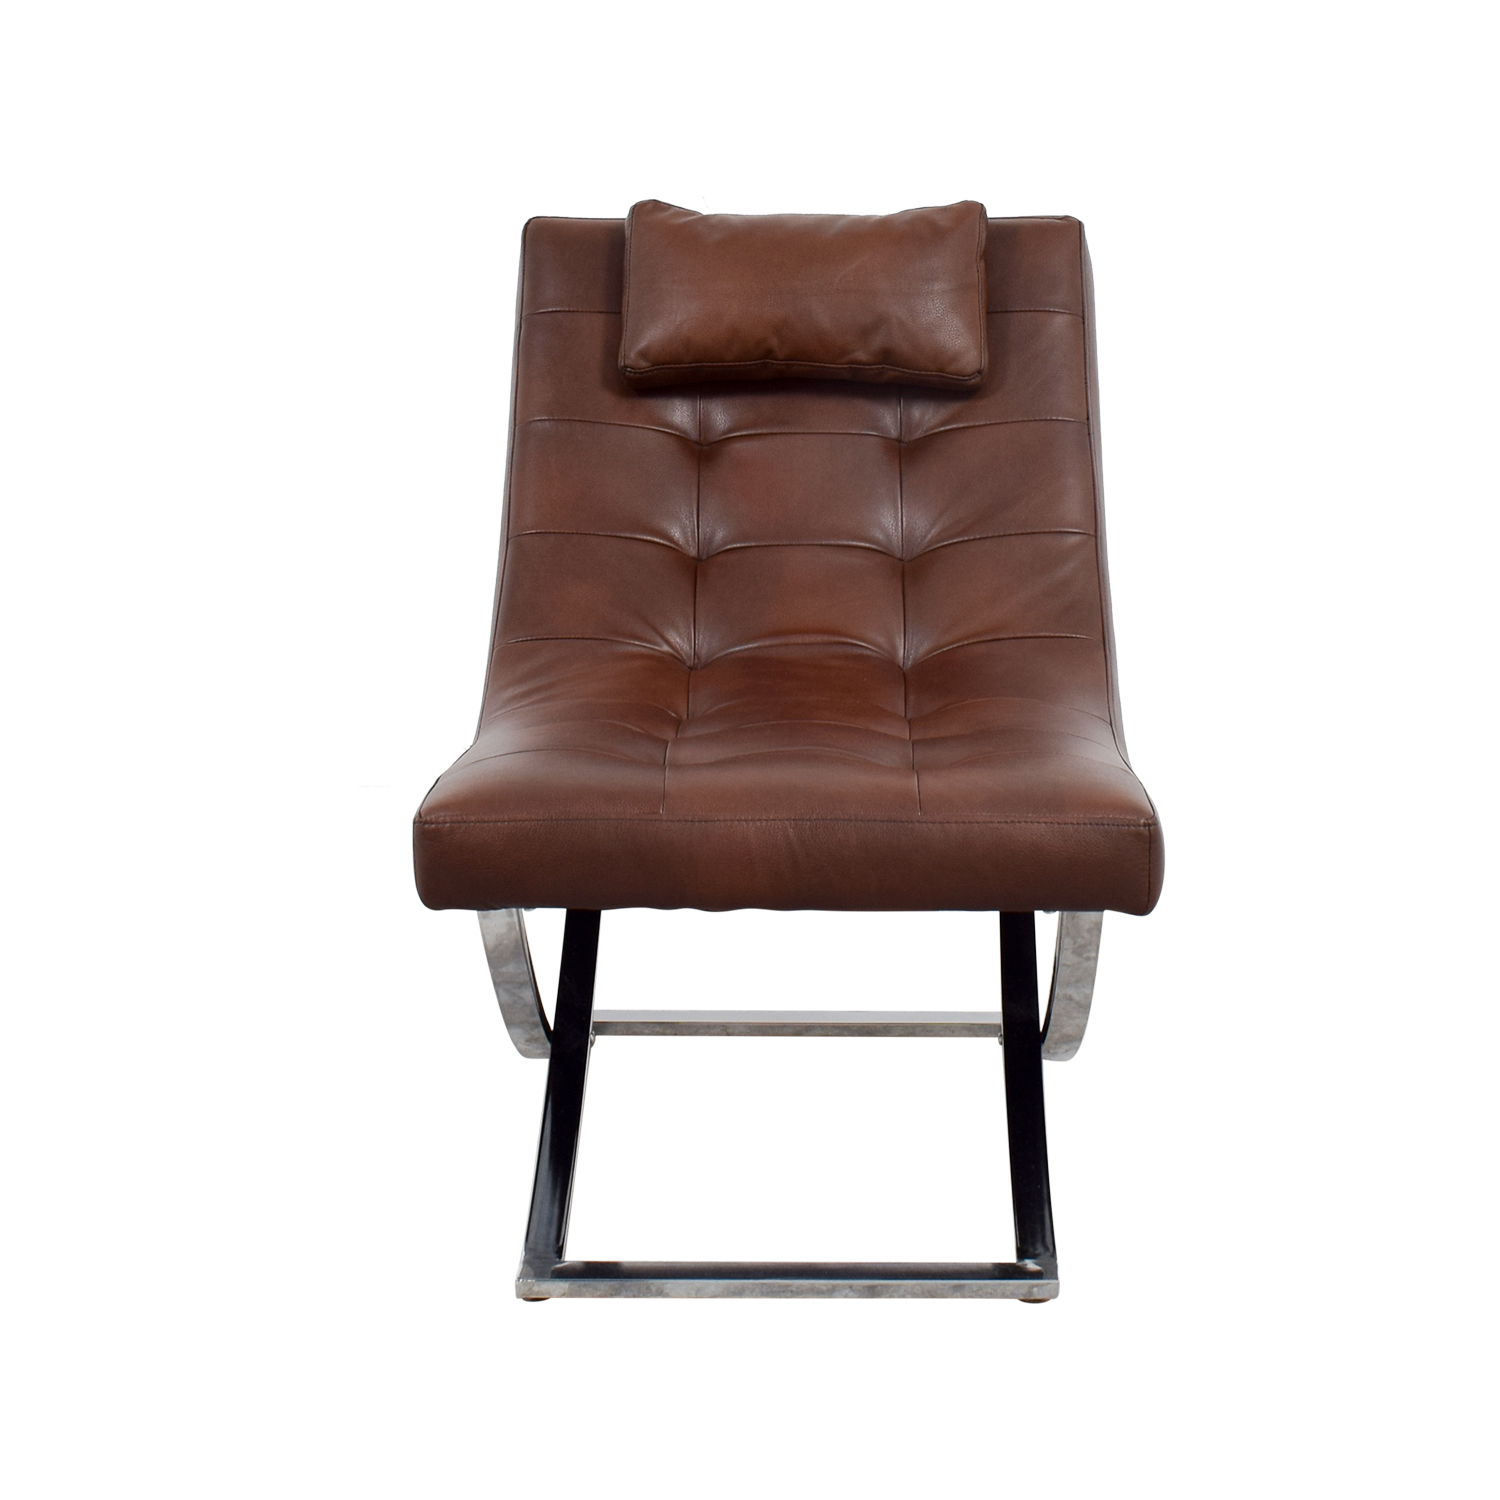 Raymour & Flanigan Raymour & Flanigan Brown Leather Chair used